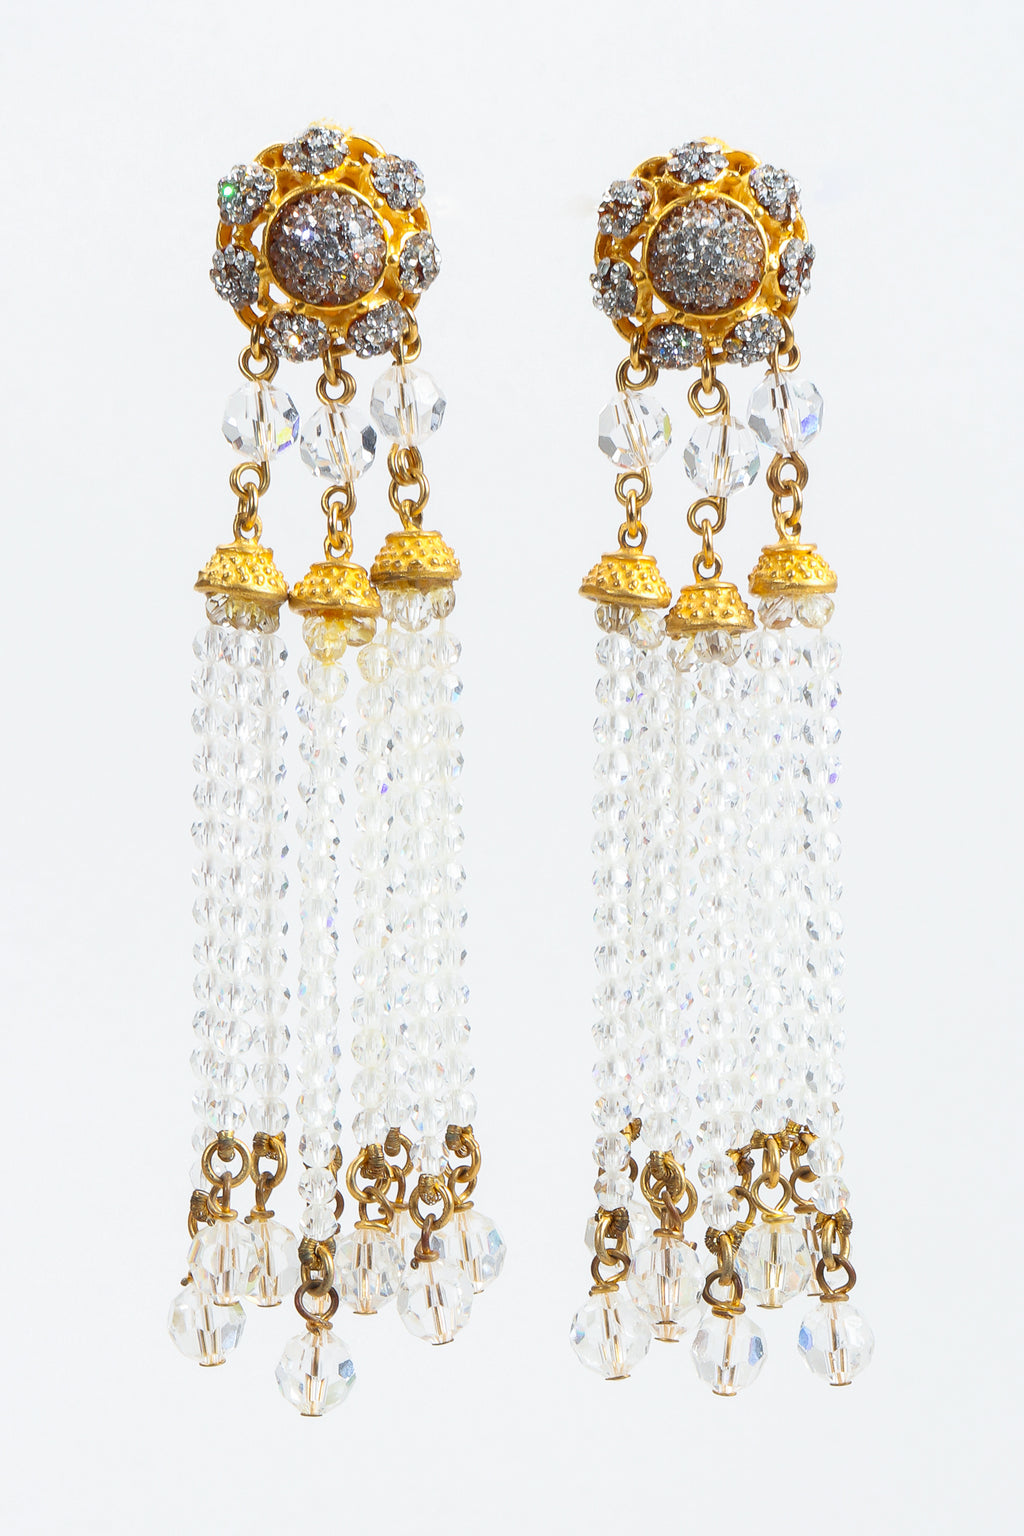 Vintage Deanna Hamro Crystal Chandelier Bead Fringe Drop Earrings at Recess